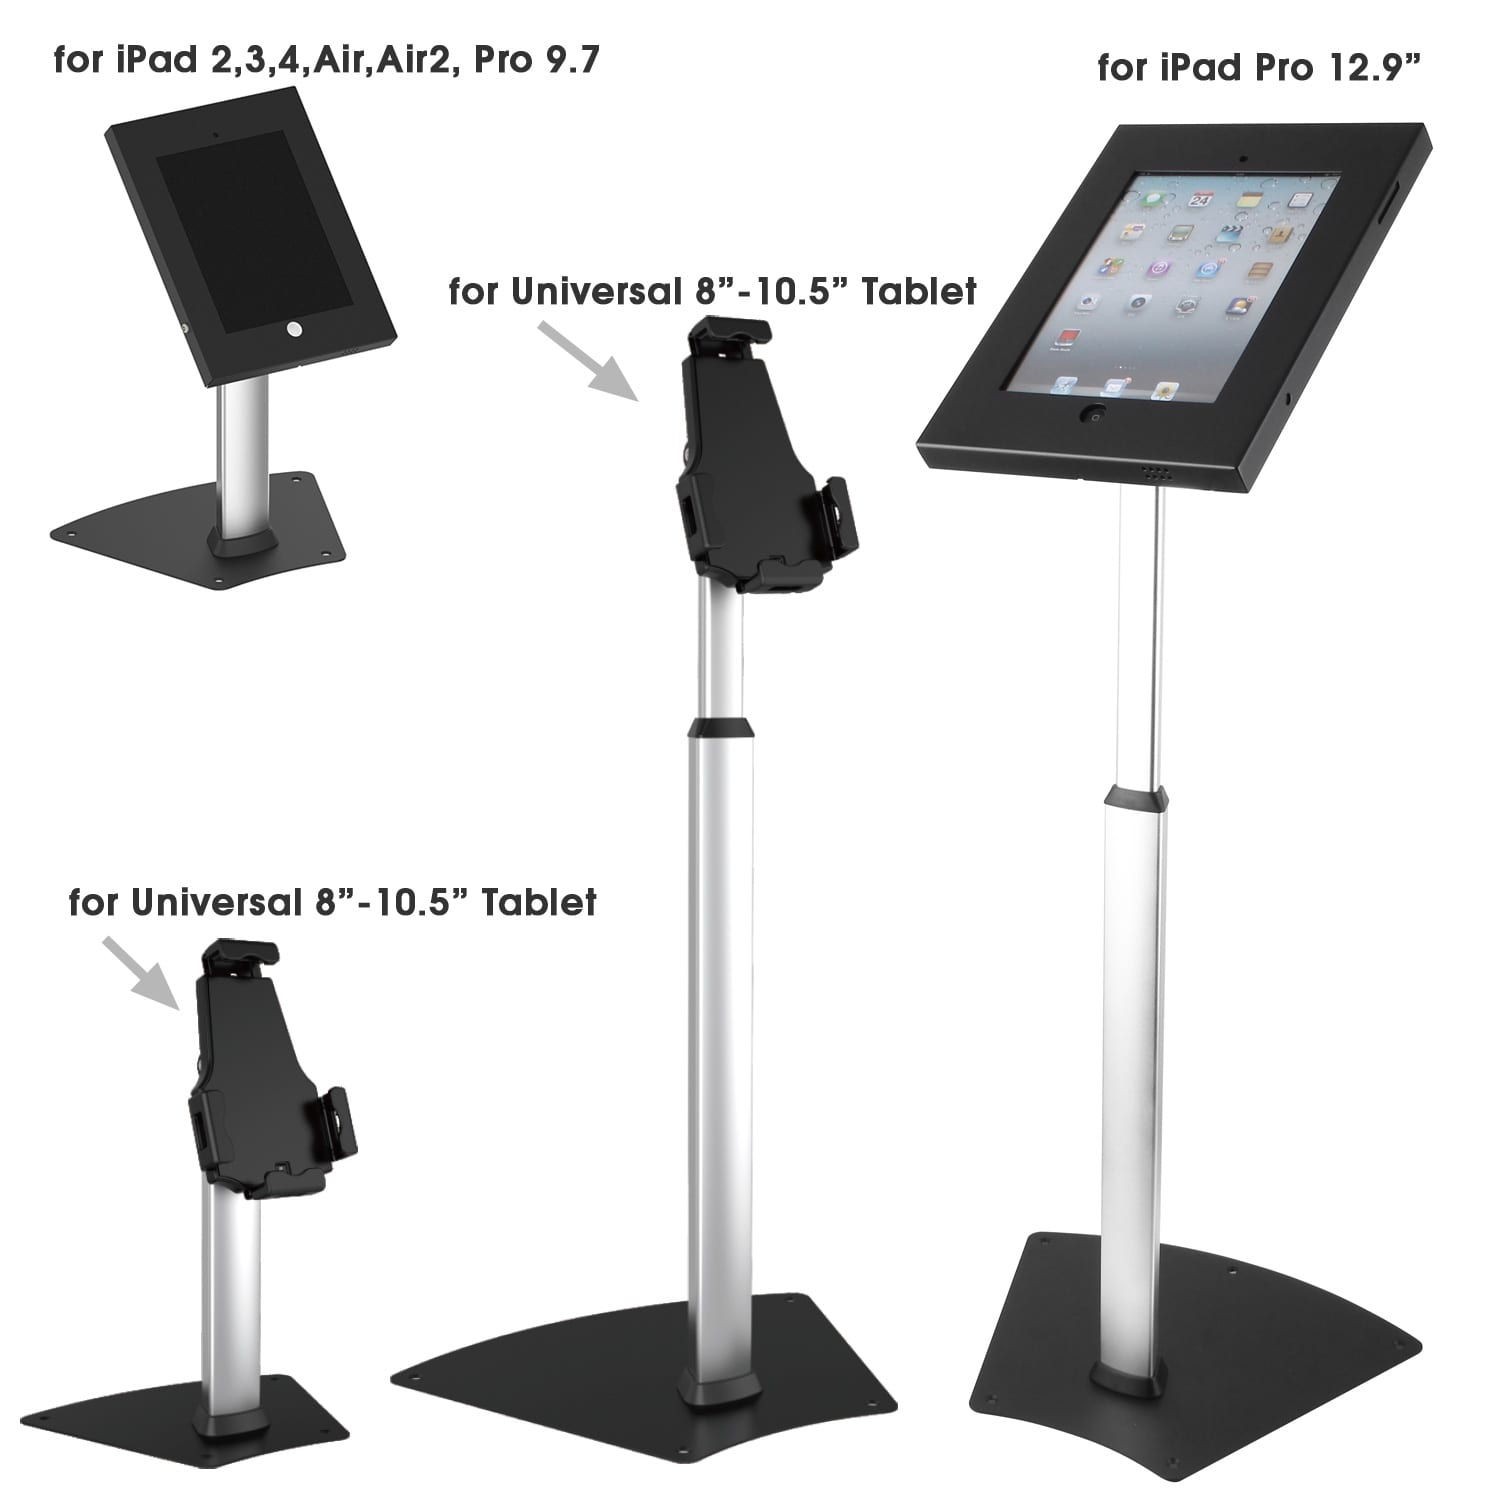 Brateck different tablet enclosures mounted to same riser to form different iPad secure stands